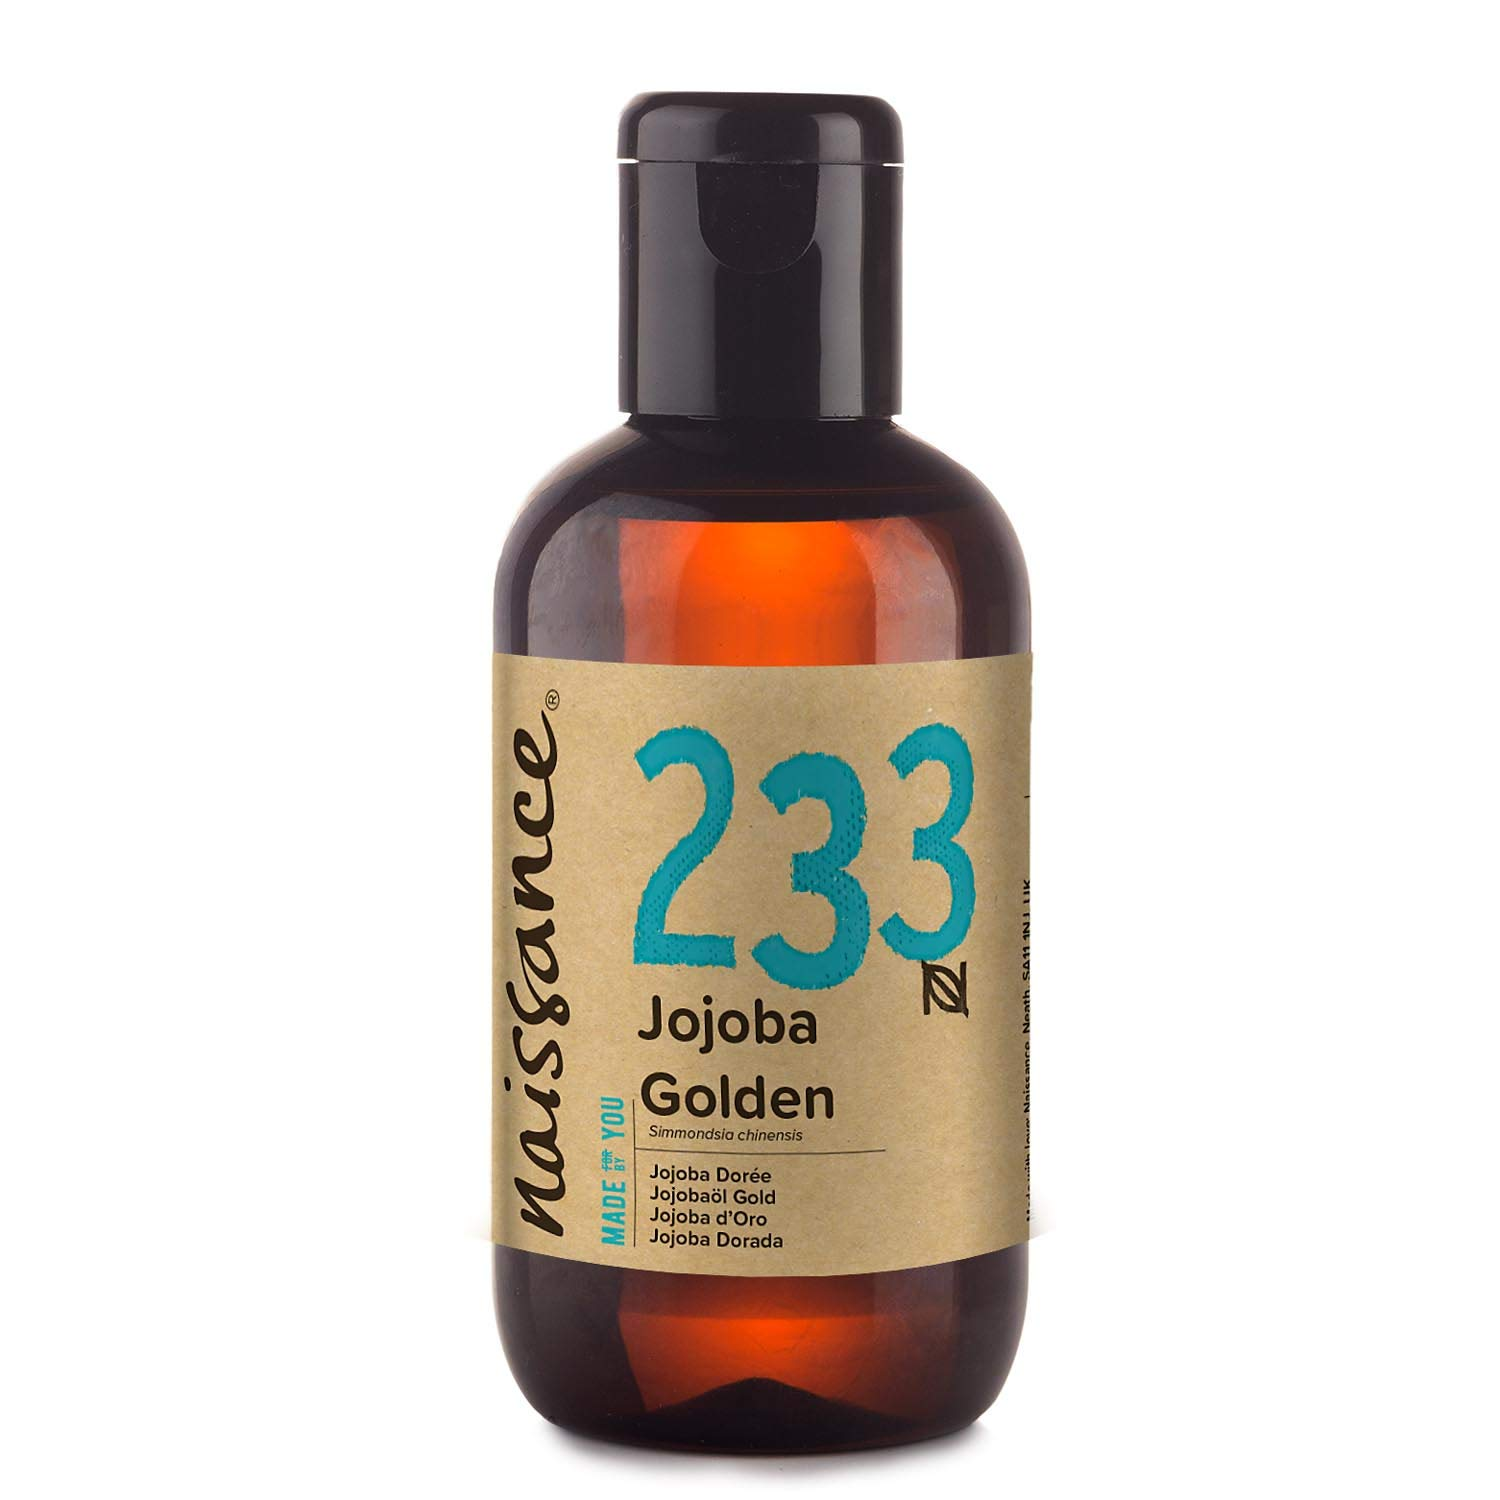 Naissance Cold Pressed Golden Jojoba Oil 3.4 fl oz - Pure & Natural, Unrefined, Vegan, Hexane Free, Non GMO - Ideal for Aromatherapy and as a Massage Base Oil - Moisturizes & Conditions Hair & Skin